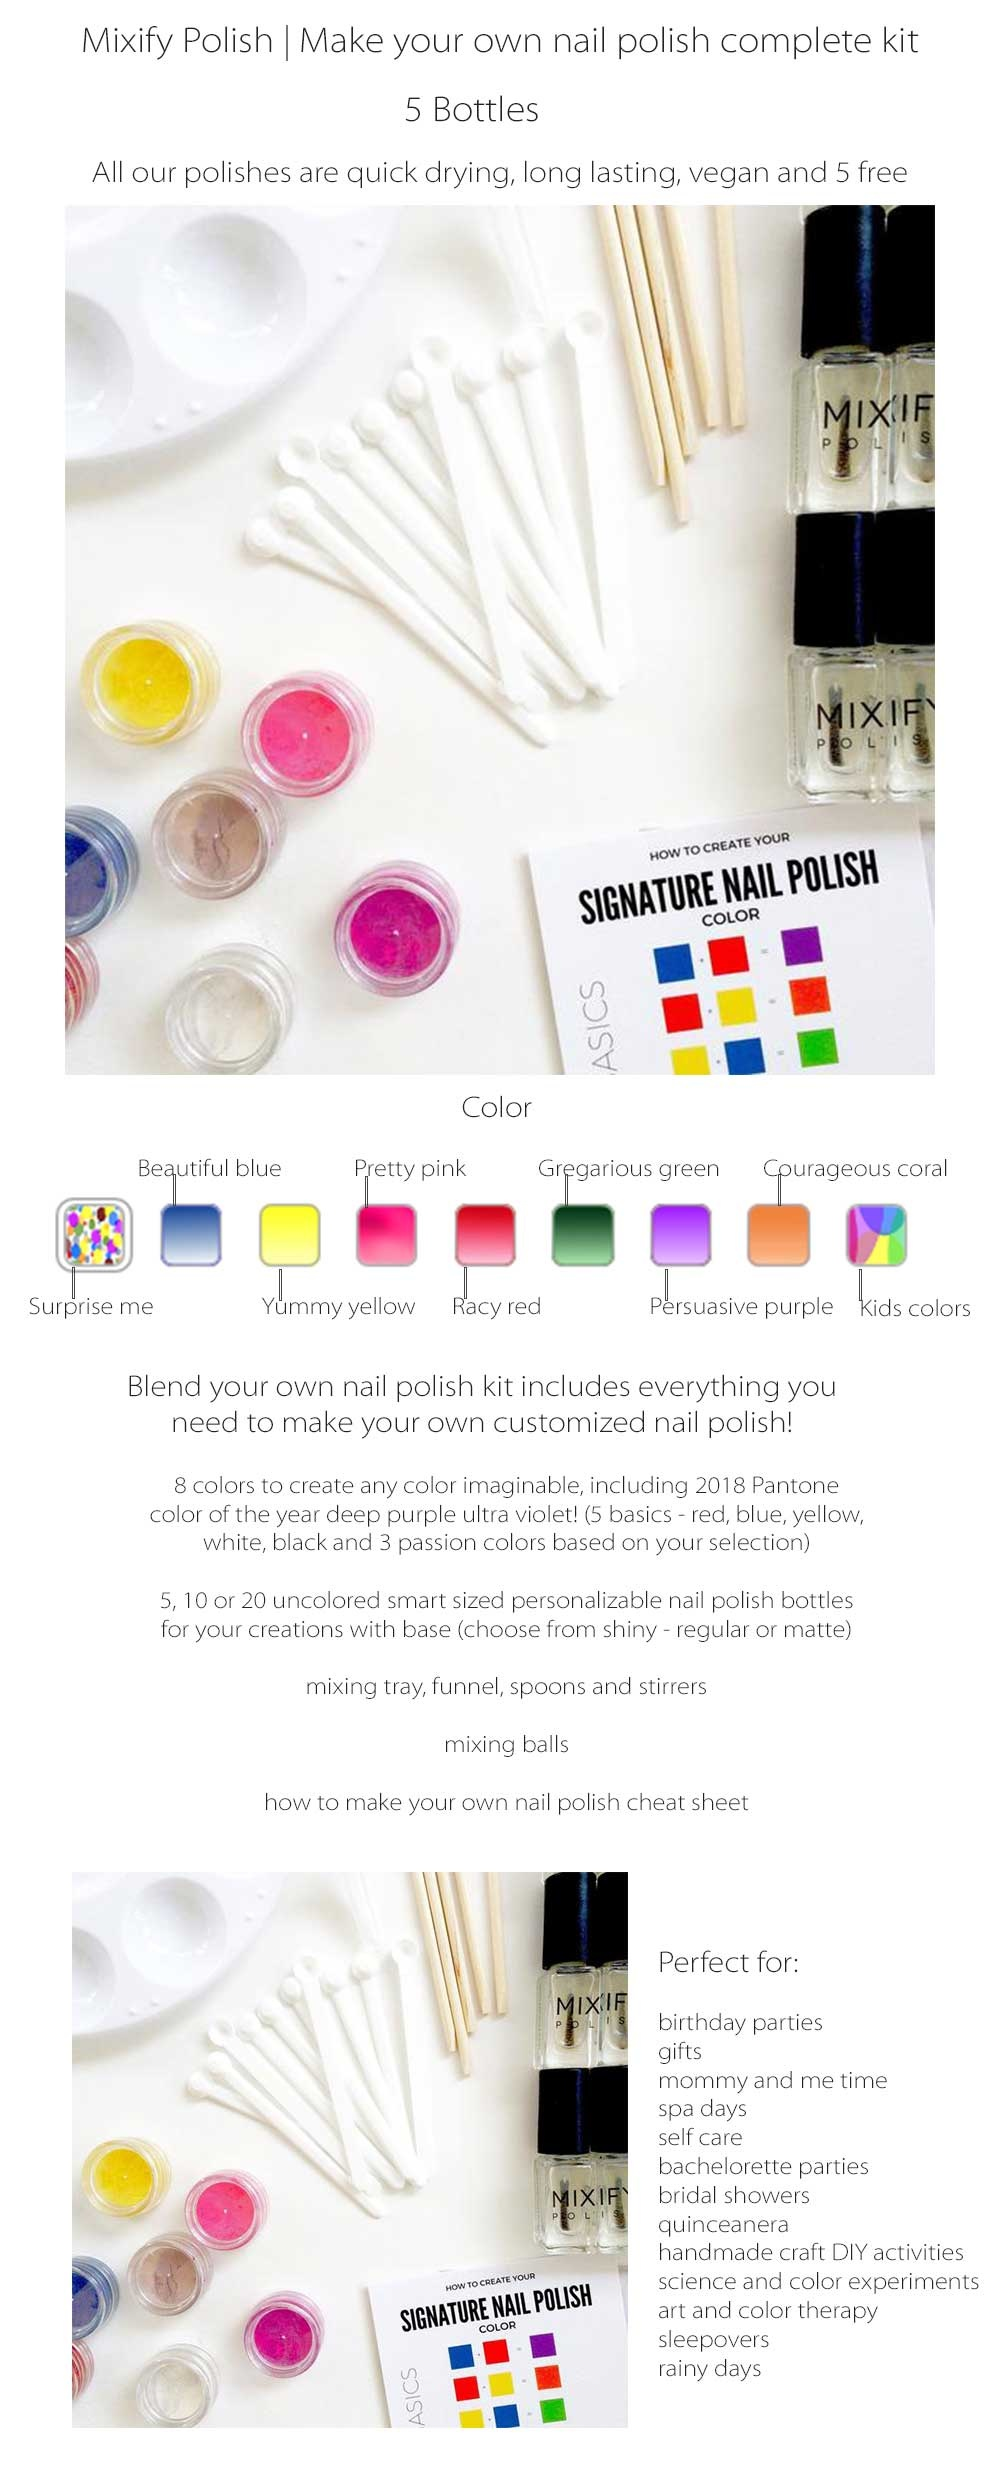 Mixify DIY Nail Polish Kit - ApolloBox